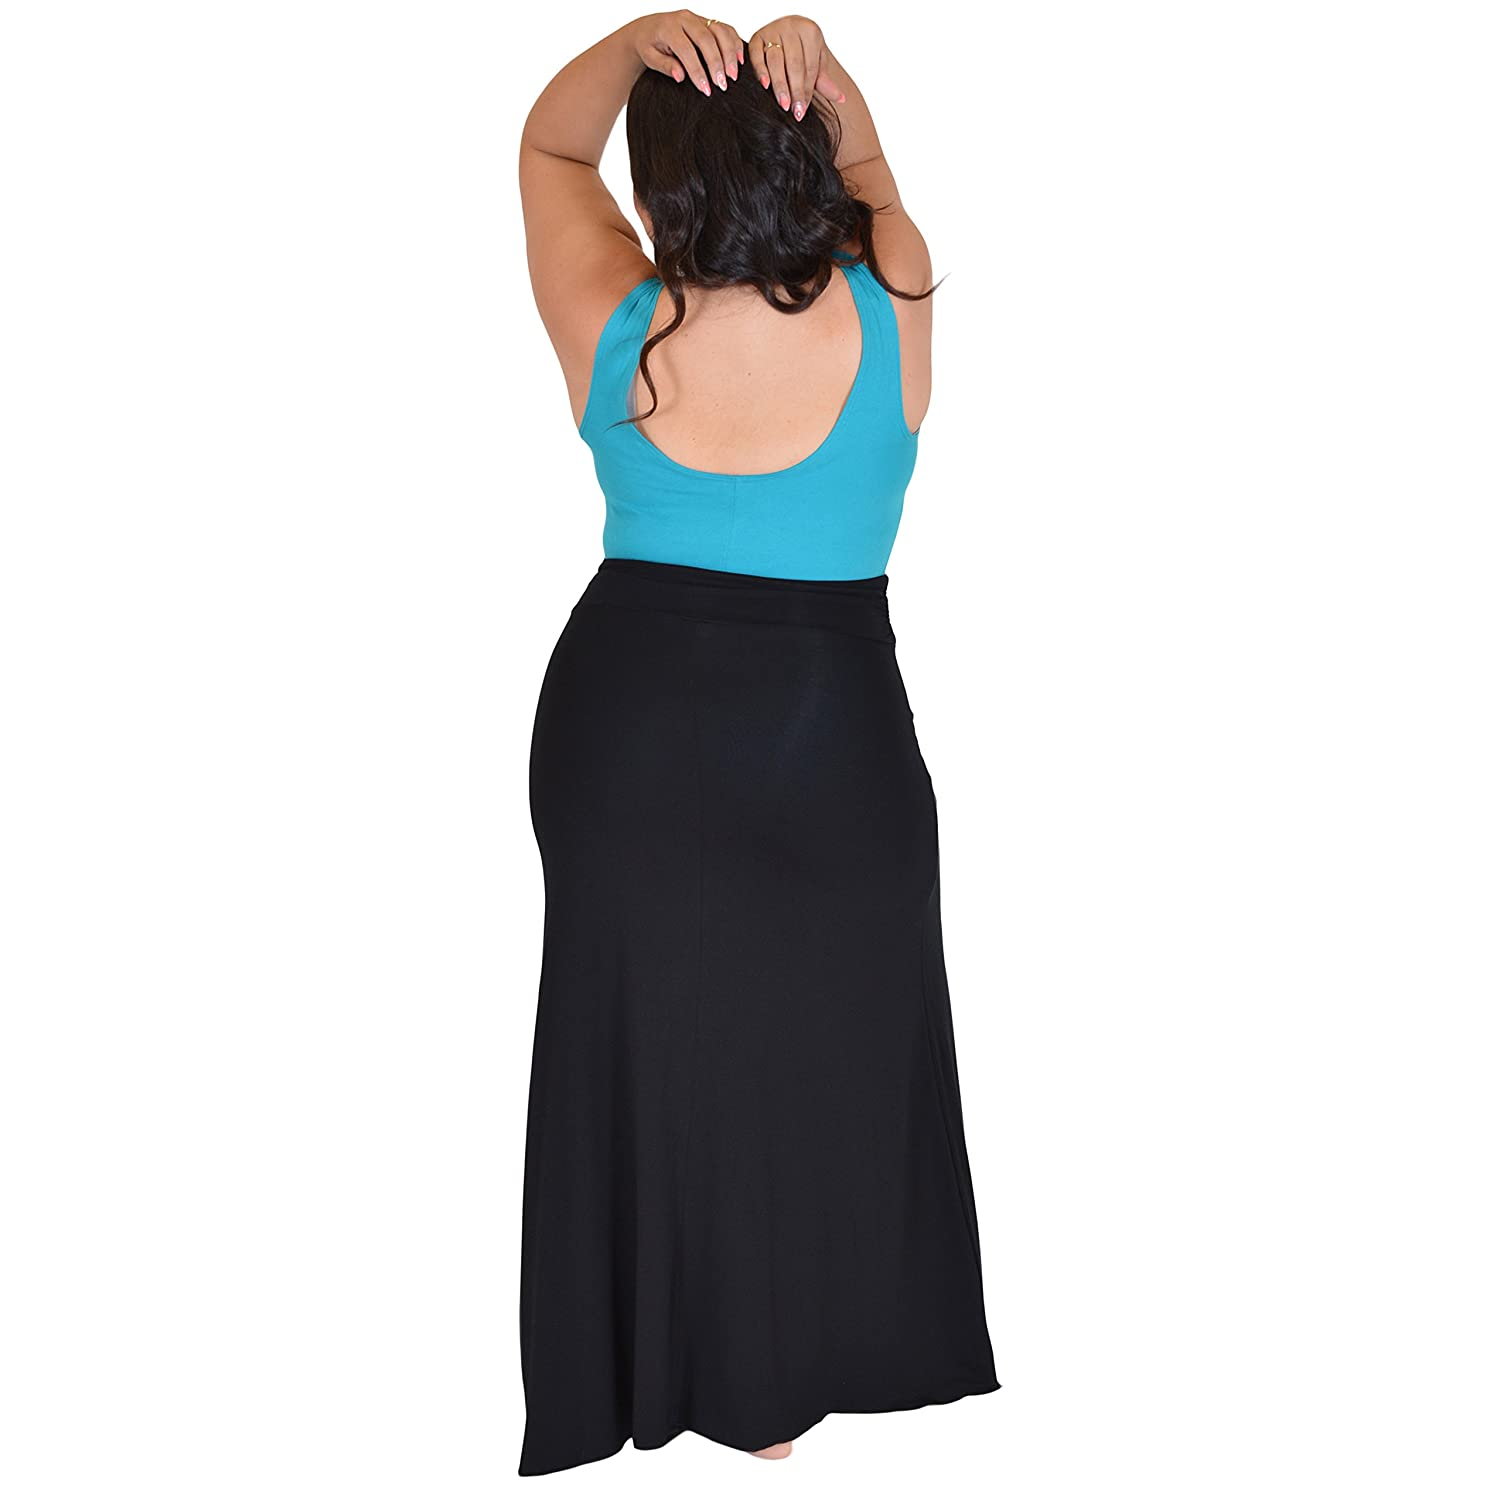 b2abe1a39f Stretch is Comfort Women's Plus Size Long Flowy Skirt at Amazon Women's  Clothing store: